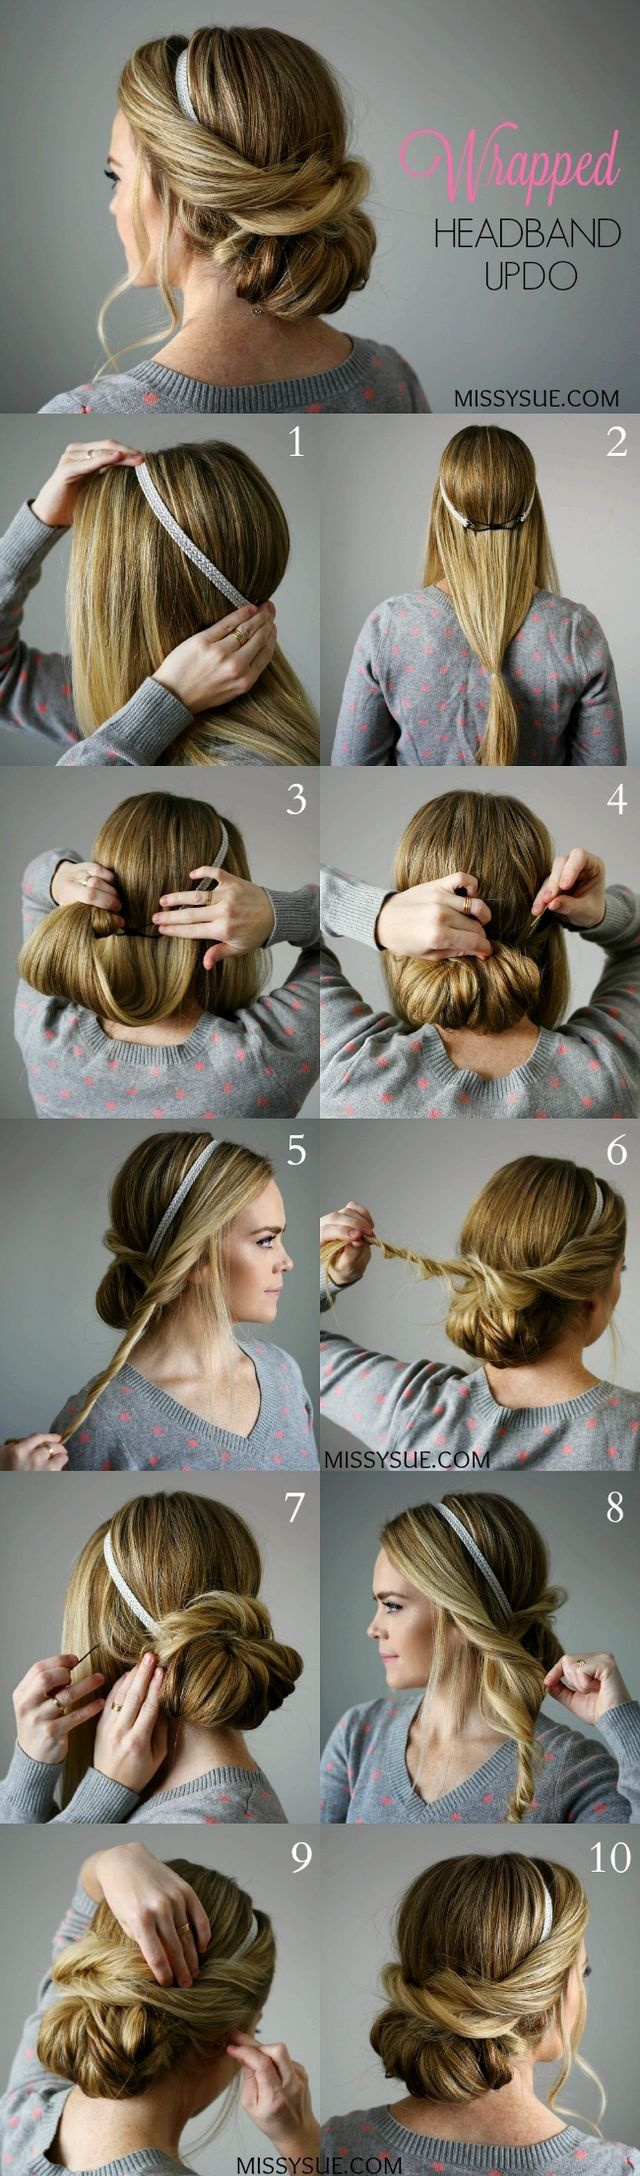 Follow me for more hairstyles hair styles pinterest hair style